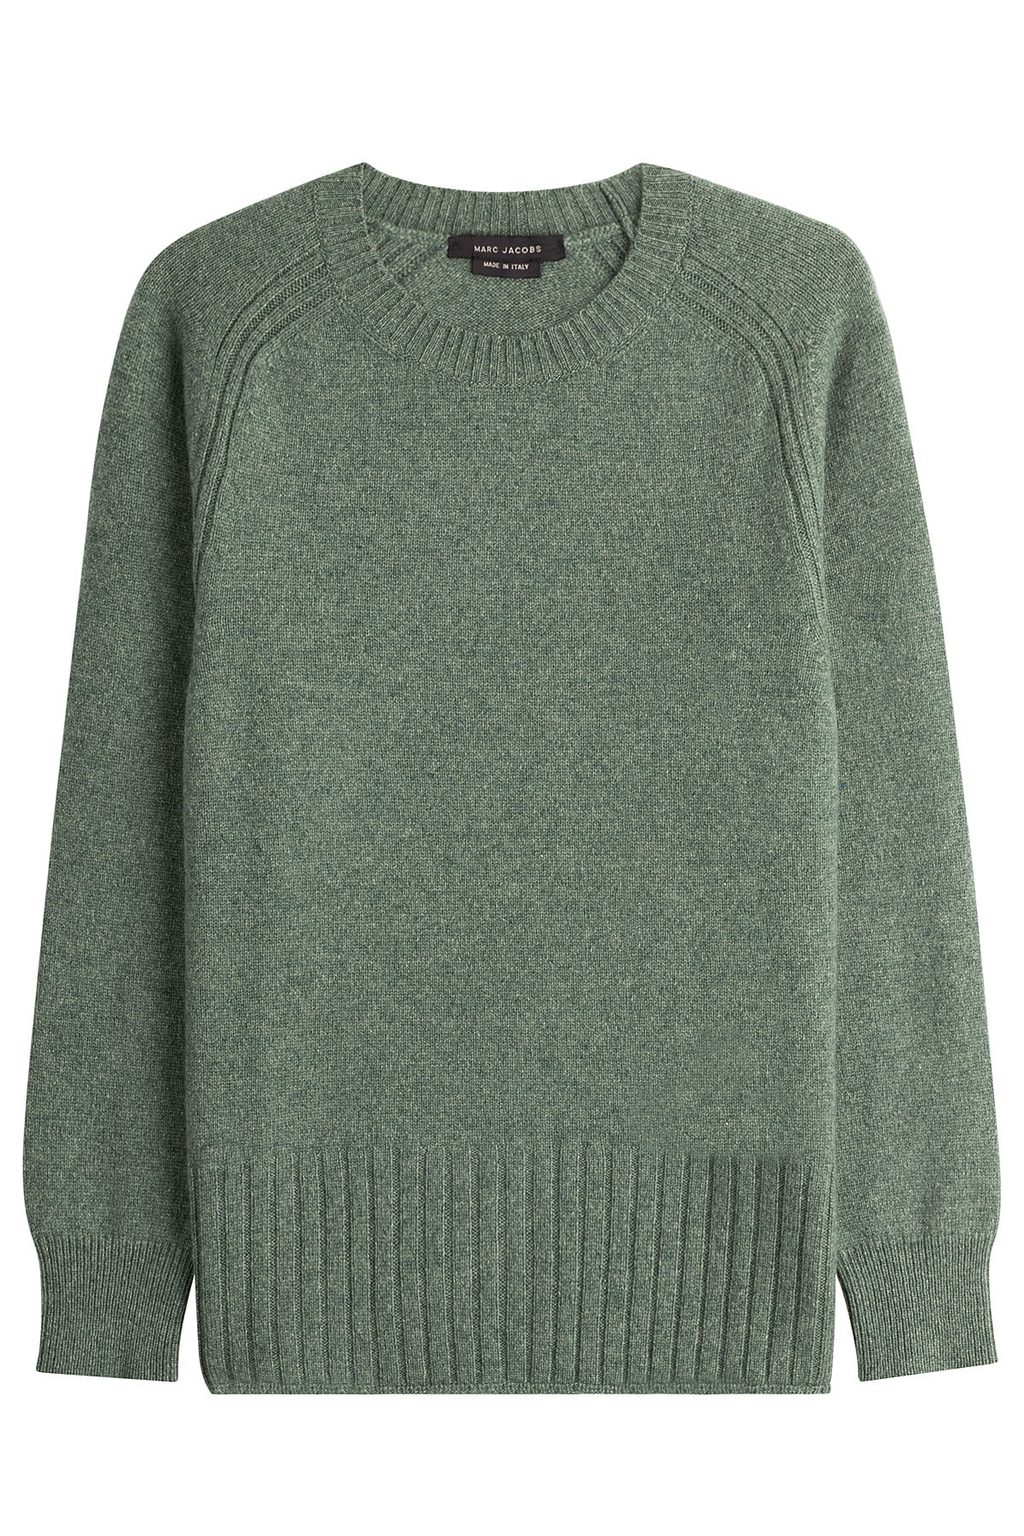 Cashmere Pullover - pattern: plain; style: standard; predominant colour: khaki; occasions: casual, creative work; length: standard; fit: slim fit; neckline: crew; fibres: cashmere - 100%; sleeve length: long sleeve; sleeve style: standard; texture group: knits/crochet; pattern type: knitted - fine stitch; season: s/s 2016; wardrobe: investment